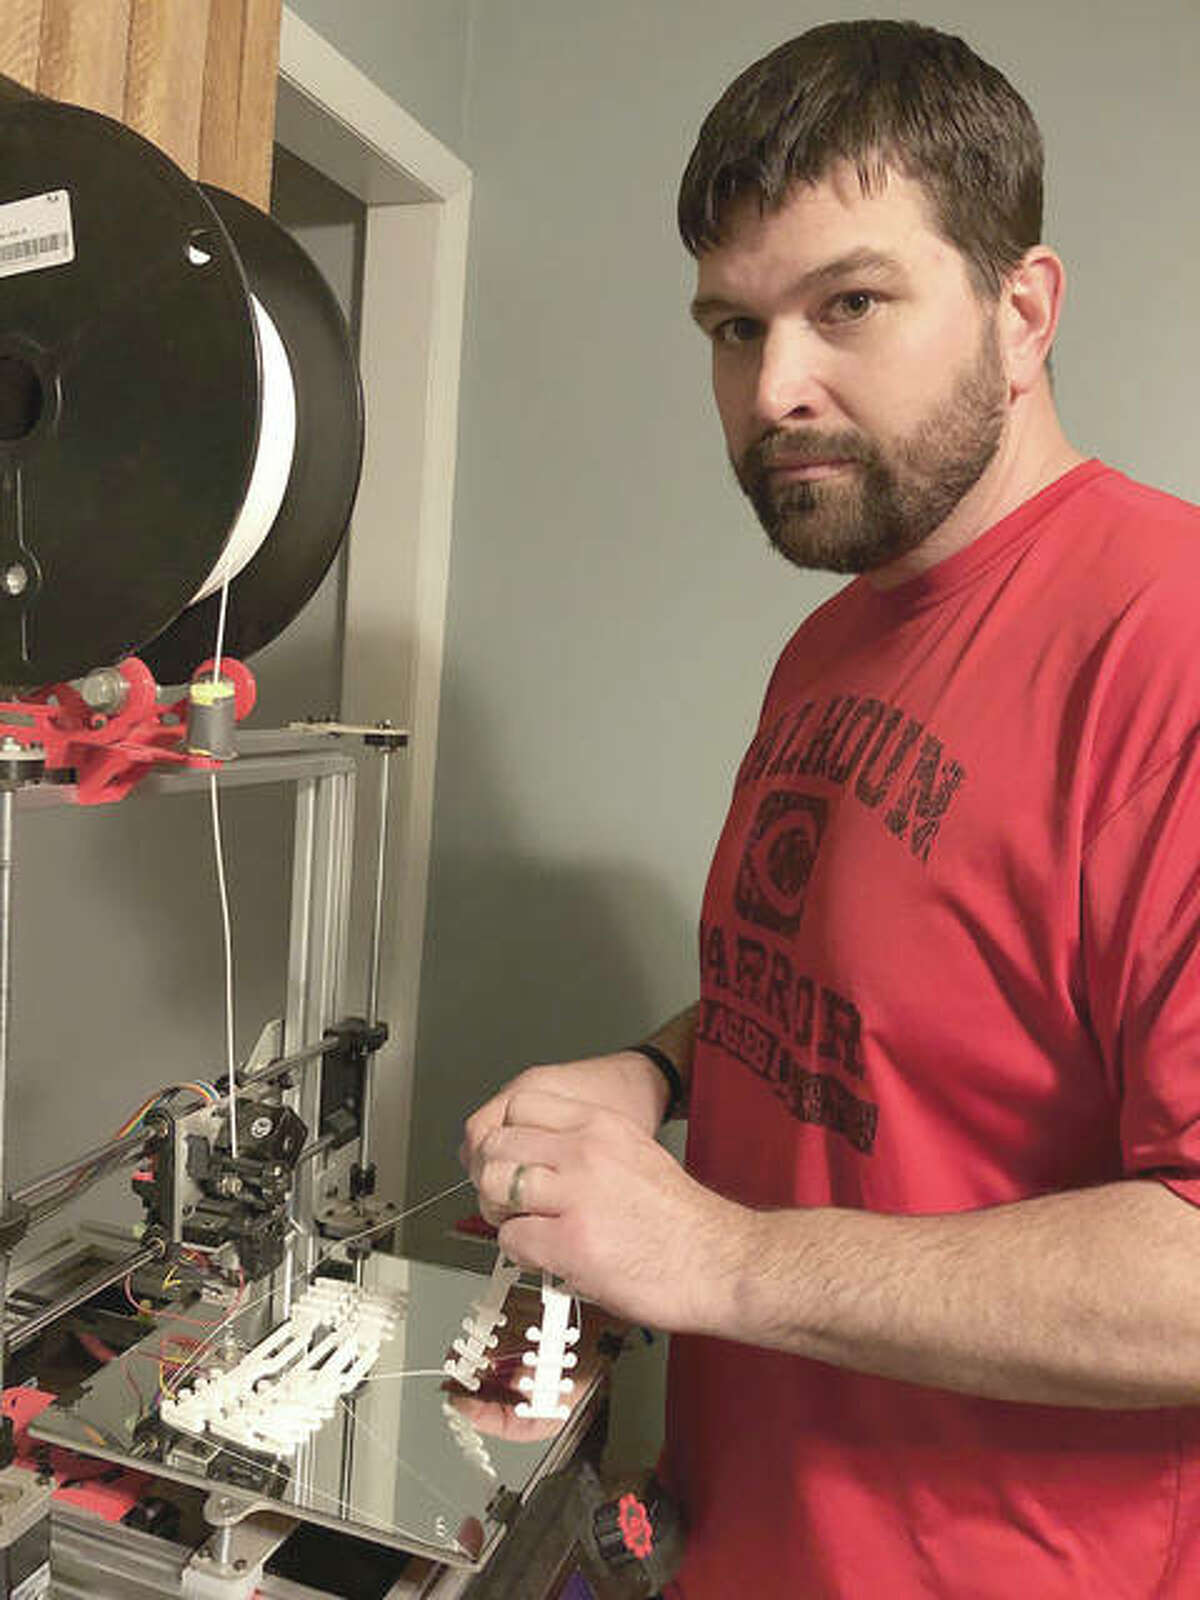 Calhoun High School industrial technology teacher Seth Grimes has used the school's 3-D printer to create face mask holders. His wife, Stacey, who works at Jerseyville Community Hospital, suggested the project after seeing posts about such devices on Facebook.